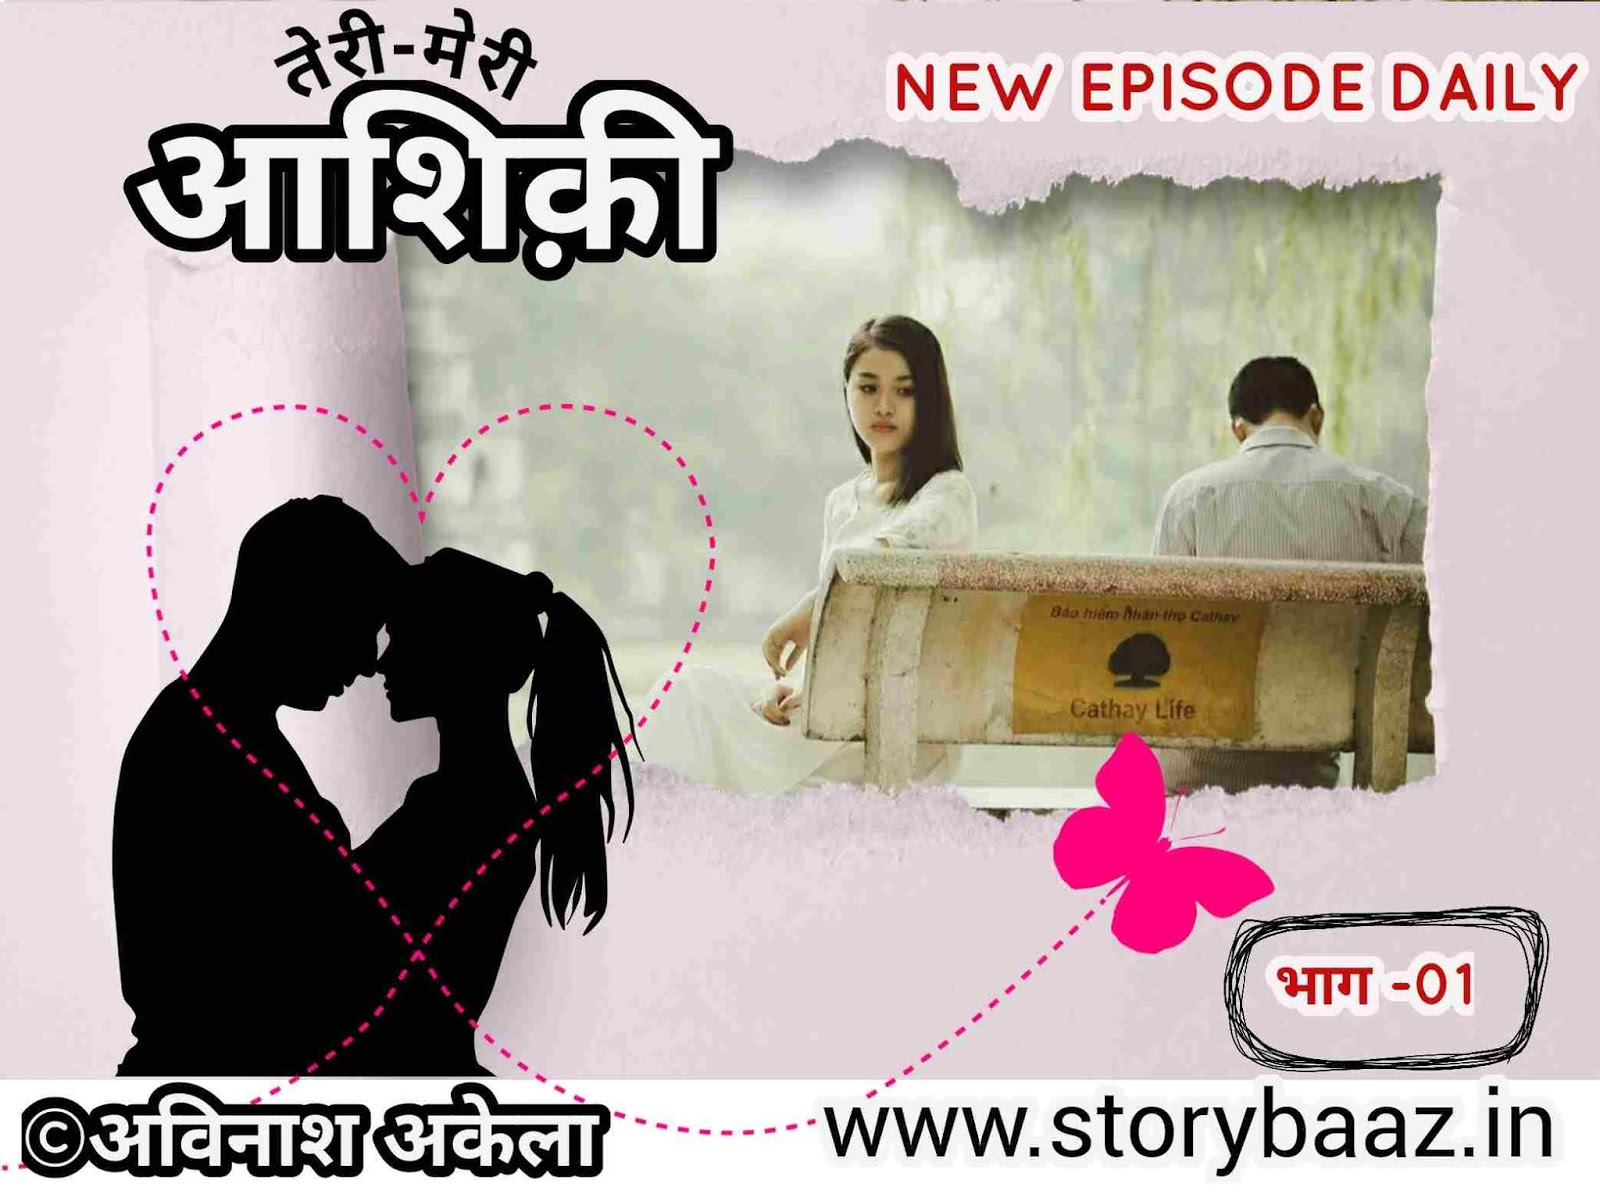 teri-meri-aashiqui-part-01-love-story-hindi-mein.jpg-new-love-story-college-love-feeling-love-story-hindi-mein